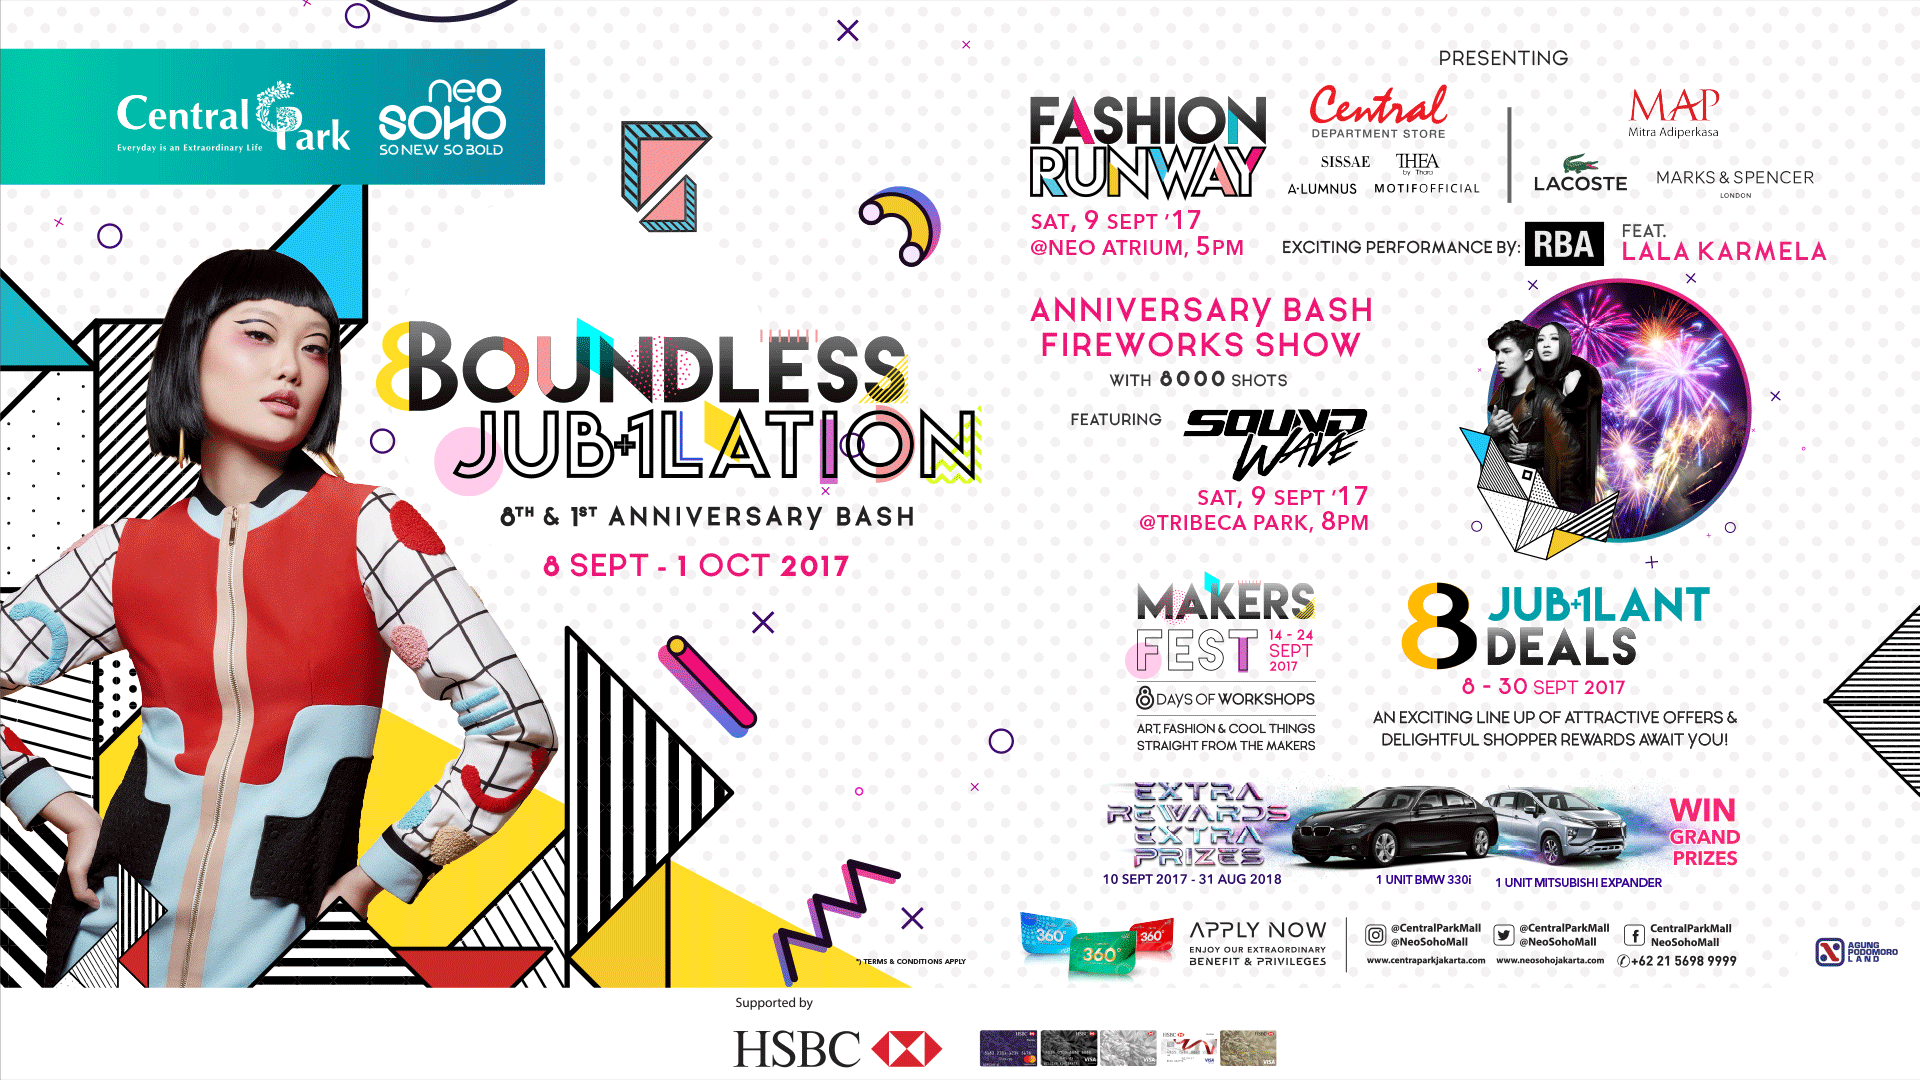 1st & 8th ANNIVERSARY BASH NEO SOHO and CENTRAL PARK MALL